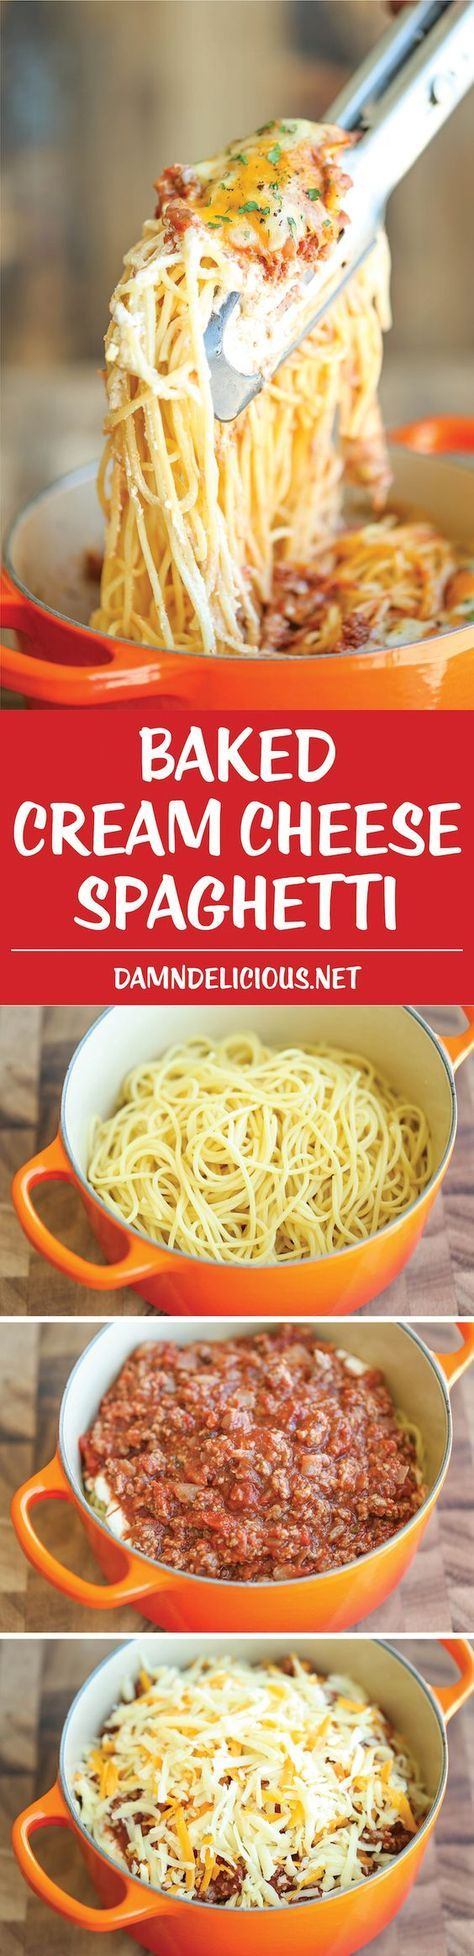 Baked Cream Cheese Spaghetti - A baked spaghetti casserole that's amazingly cheesy and creamy. It's comfort food at its best, and EASIEST!